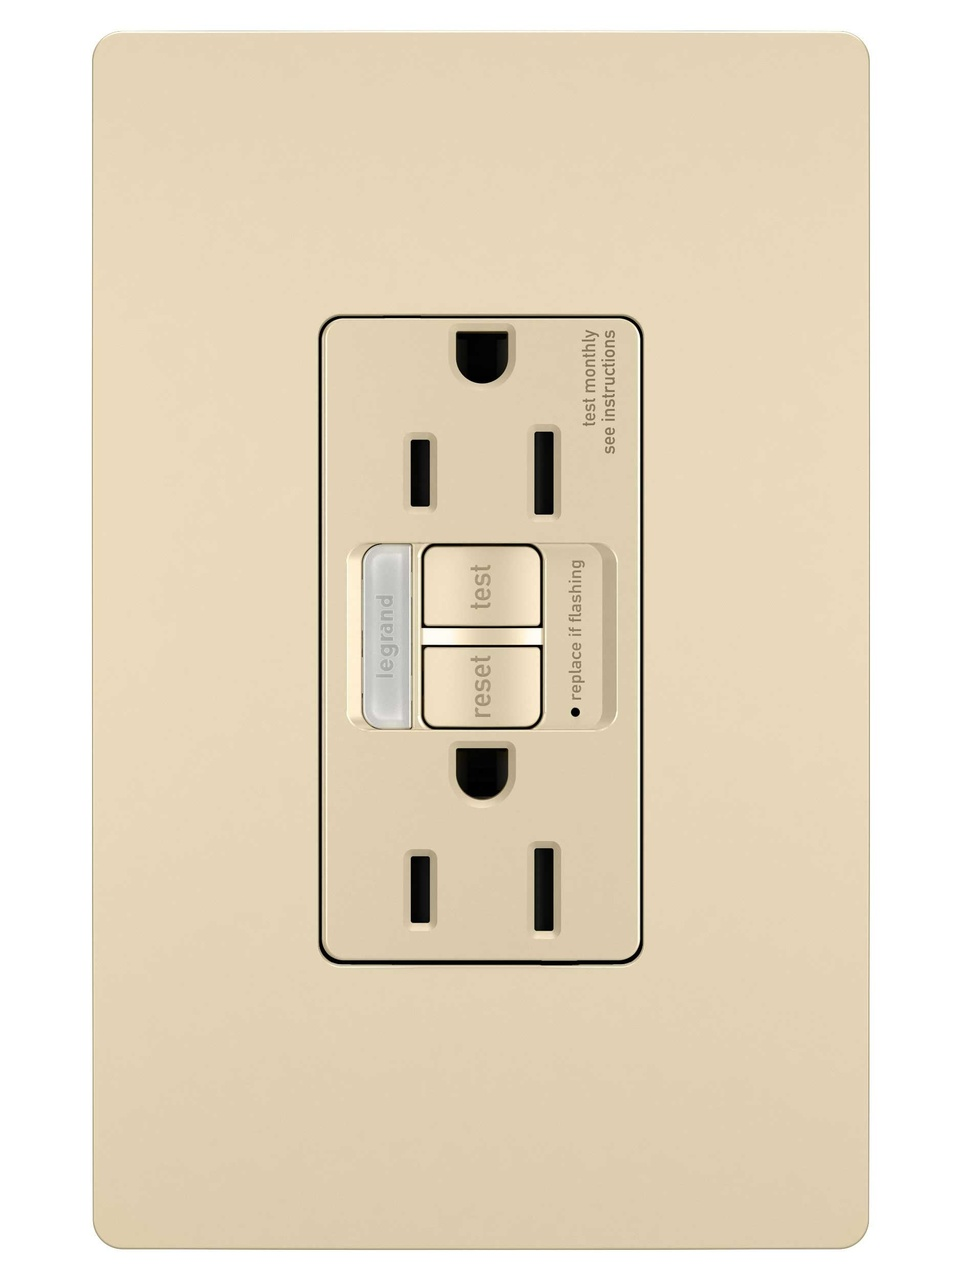 Combination Tamper-Resistant 15A Self-Test Night Light/GFCI, Ivory